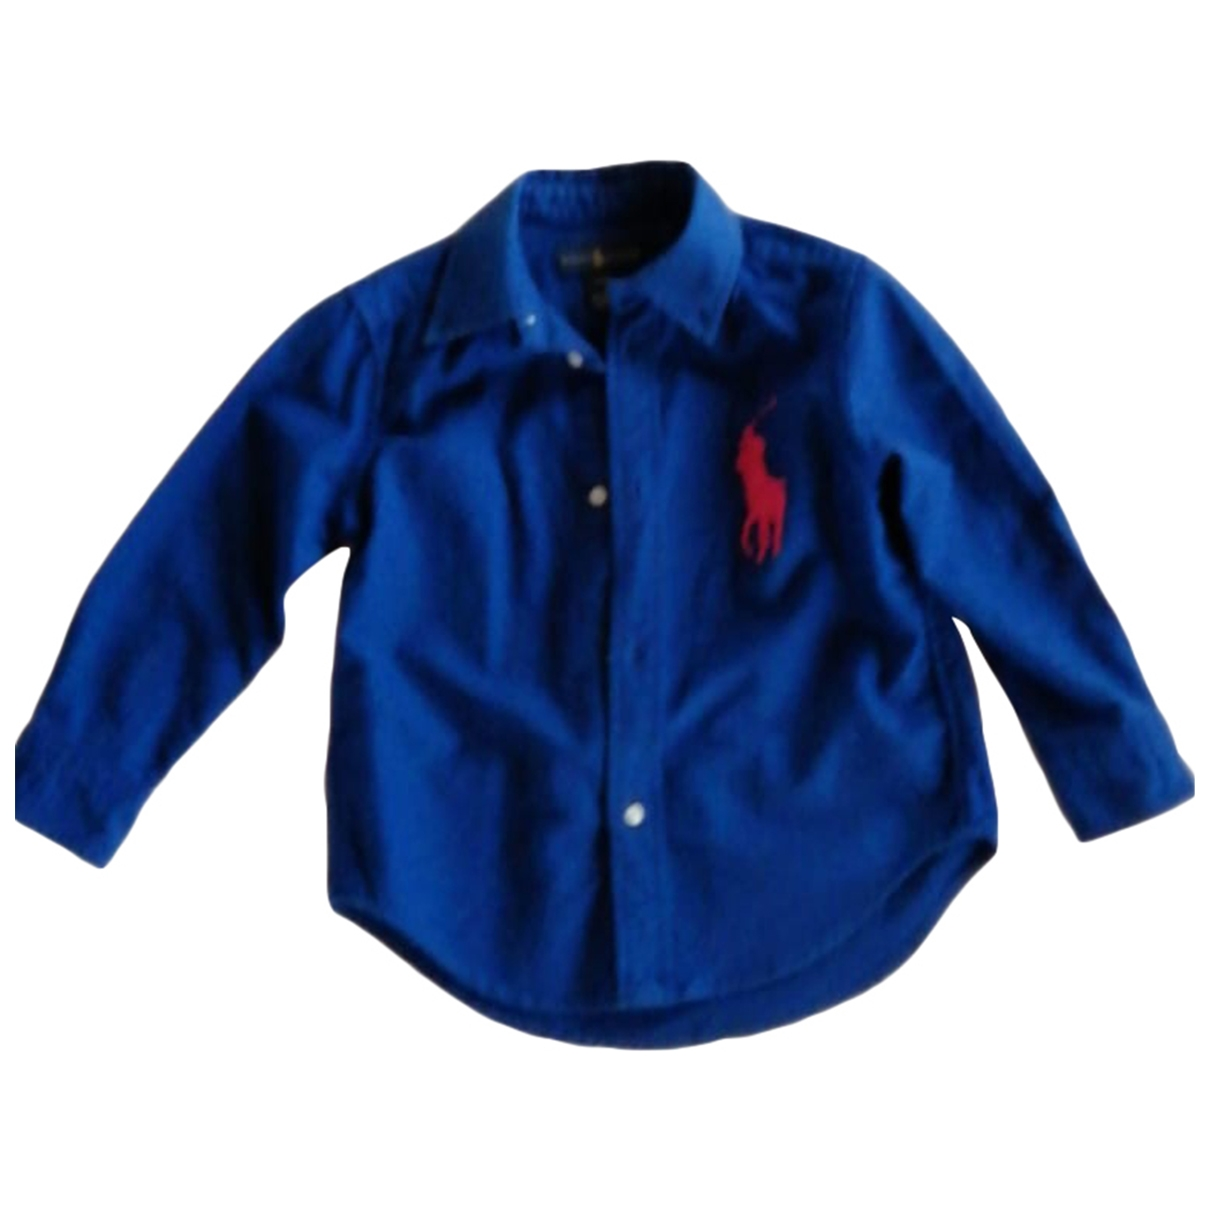 Ralph Lauren \N Blue Cotton  top for Kids 3 years - until 39 inches UK